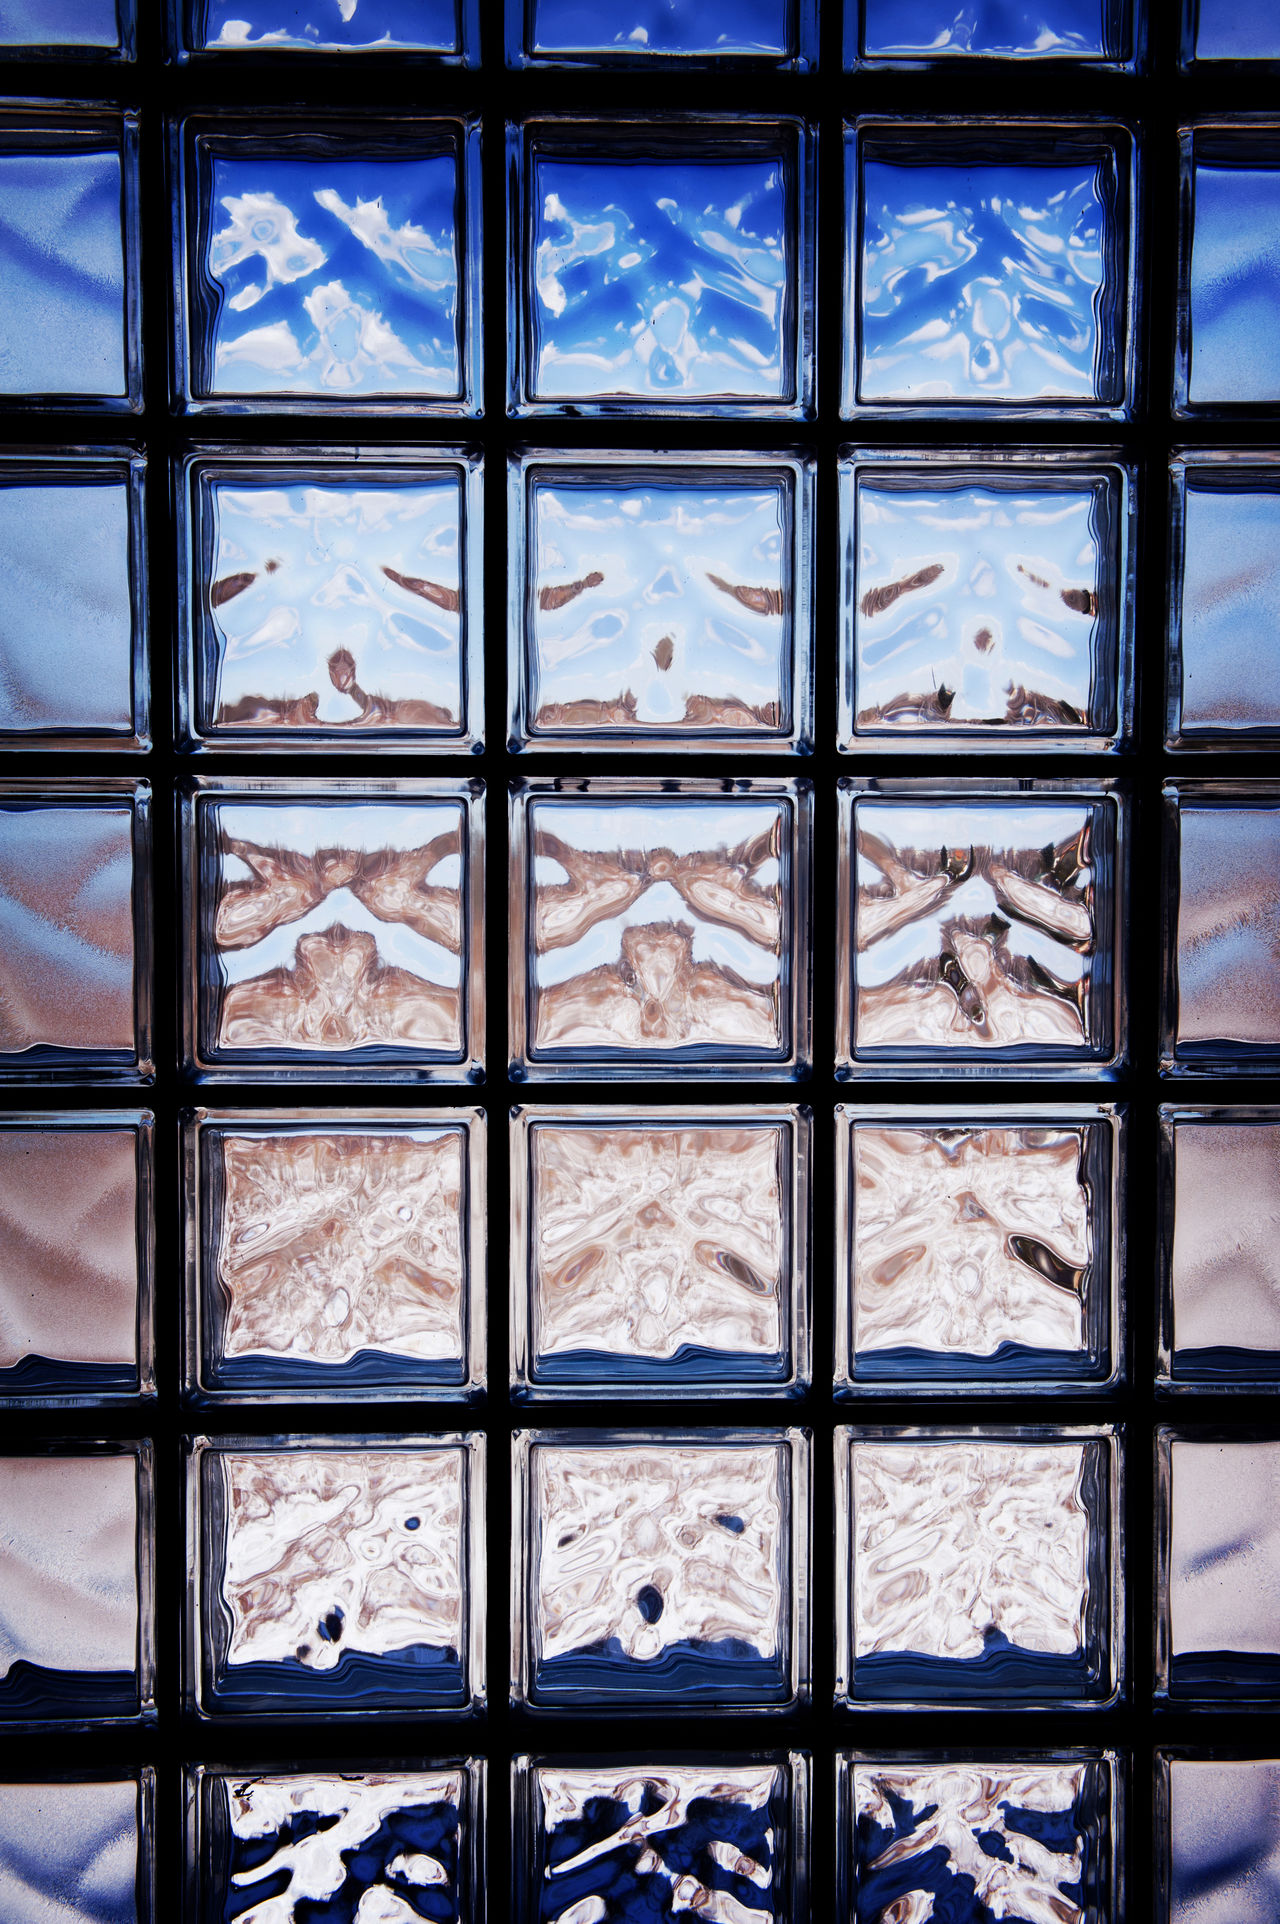 Blue toned glass brick window abstract with dark vignette, transparent glass blocks surface background in horizontal orientation, nobody. Abstract Abstracts Background Backgrounds Block Blocks Blue Brick Bricks Decor Empty Glass Glassbrick Luksfer No People Transparent Wall Window